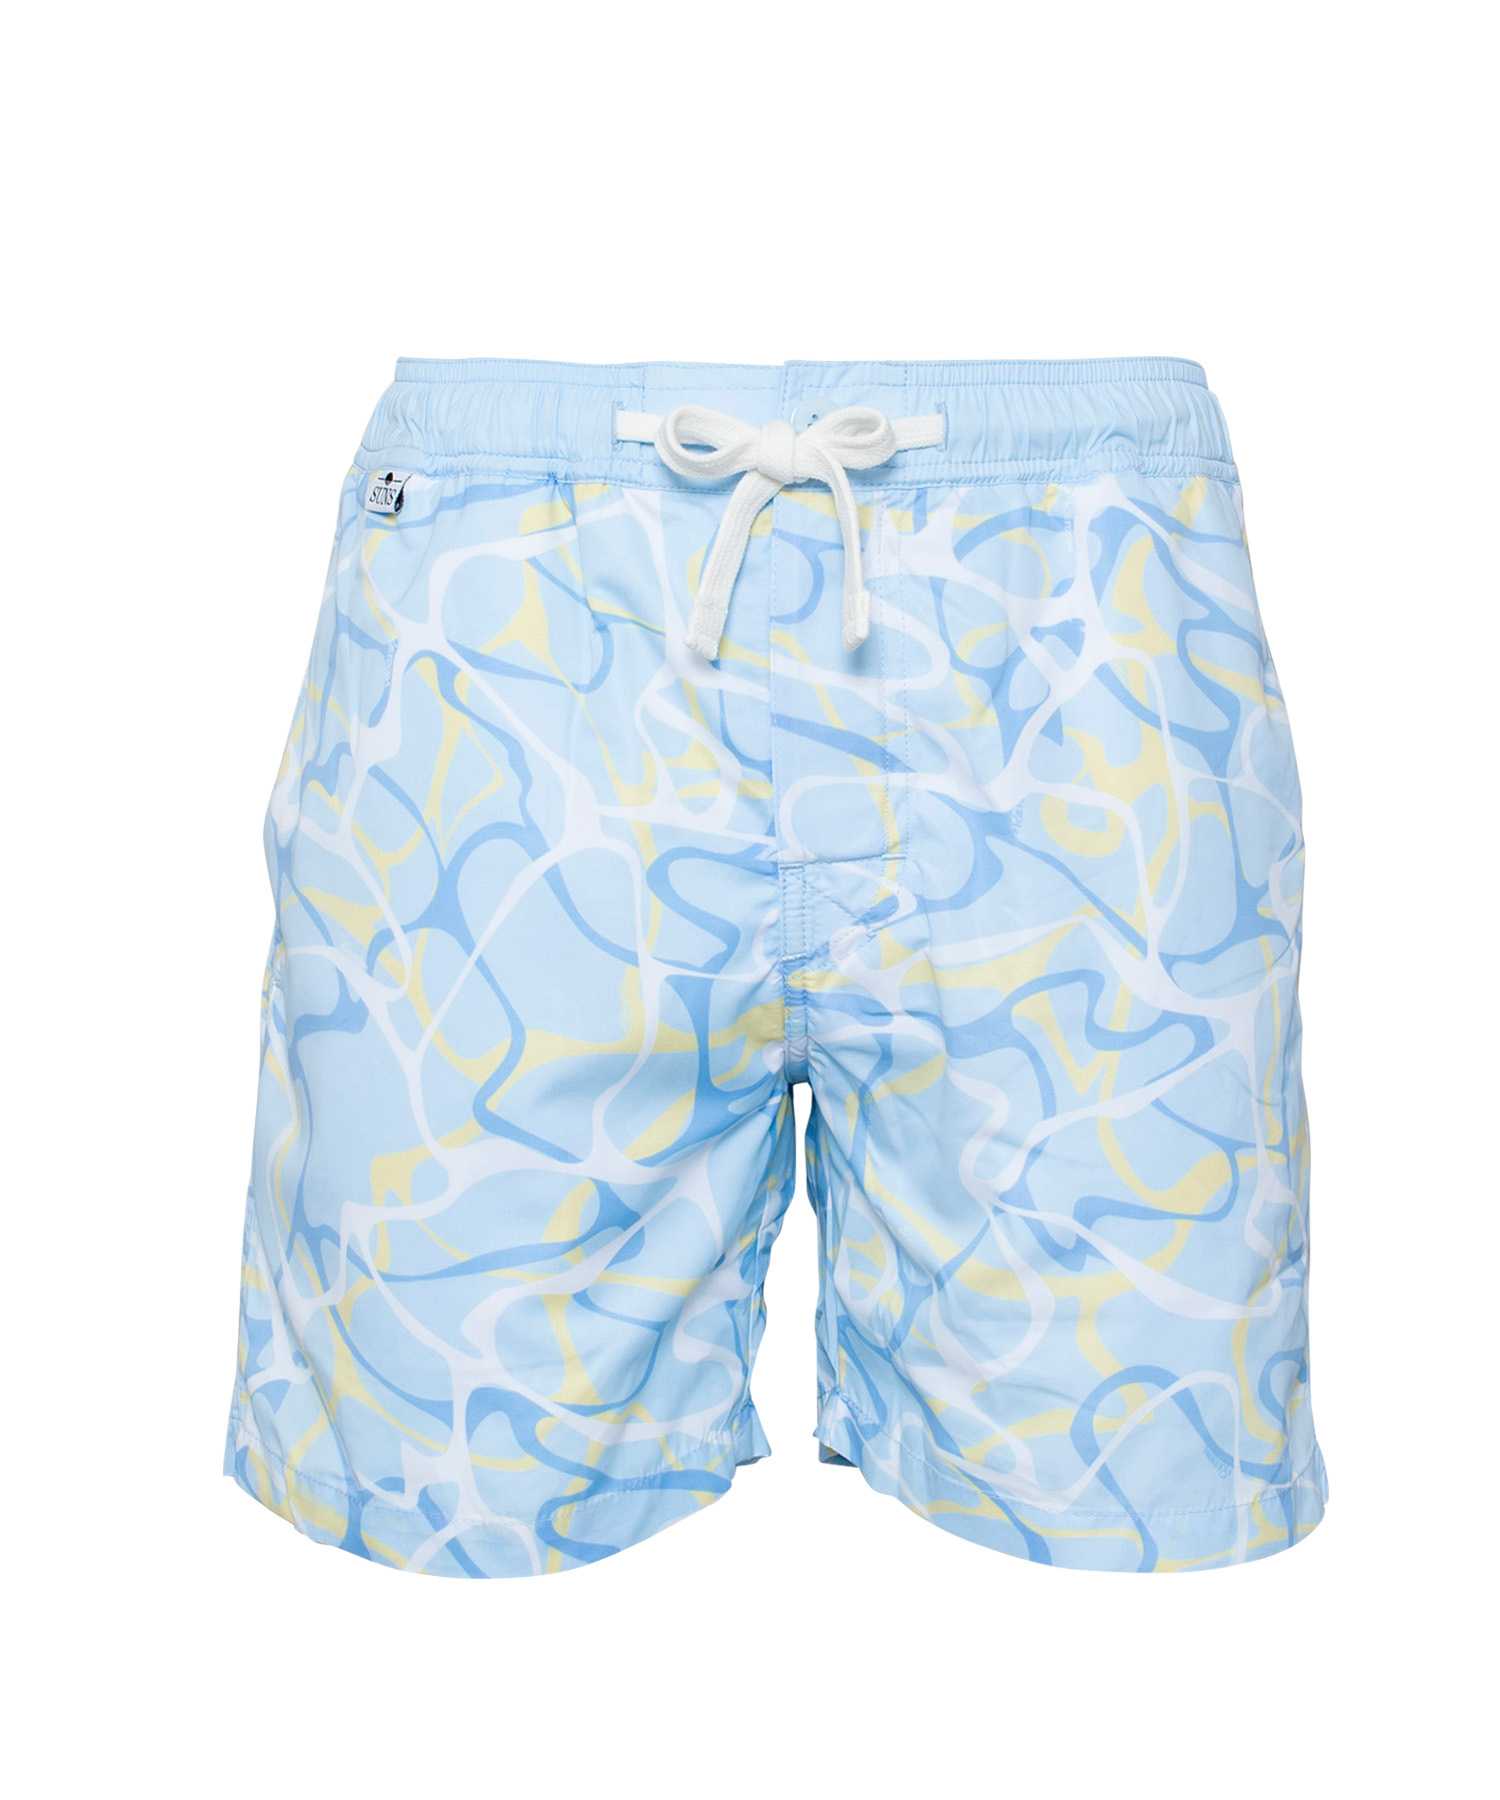 SUNS WATER SURFACE PATTERN PRINT SWIM SHORTS[RSW010]